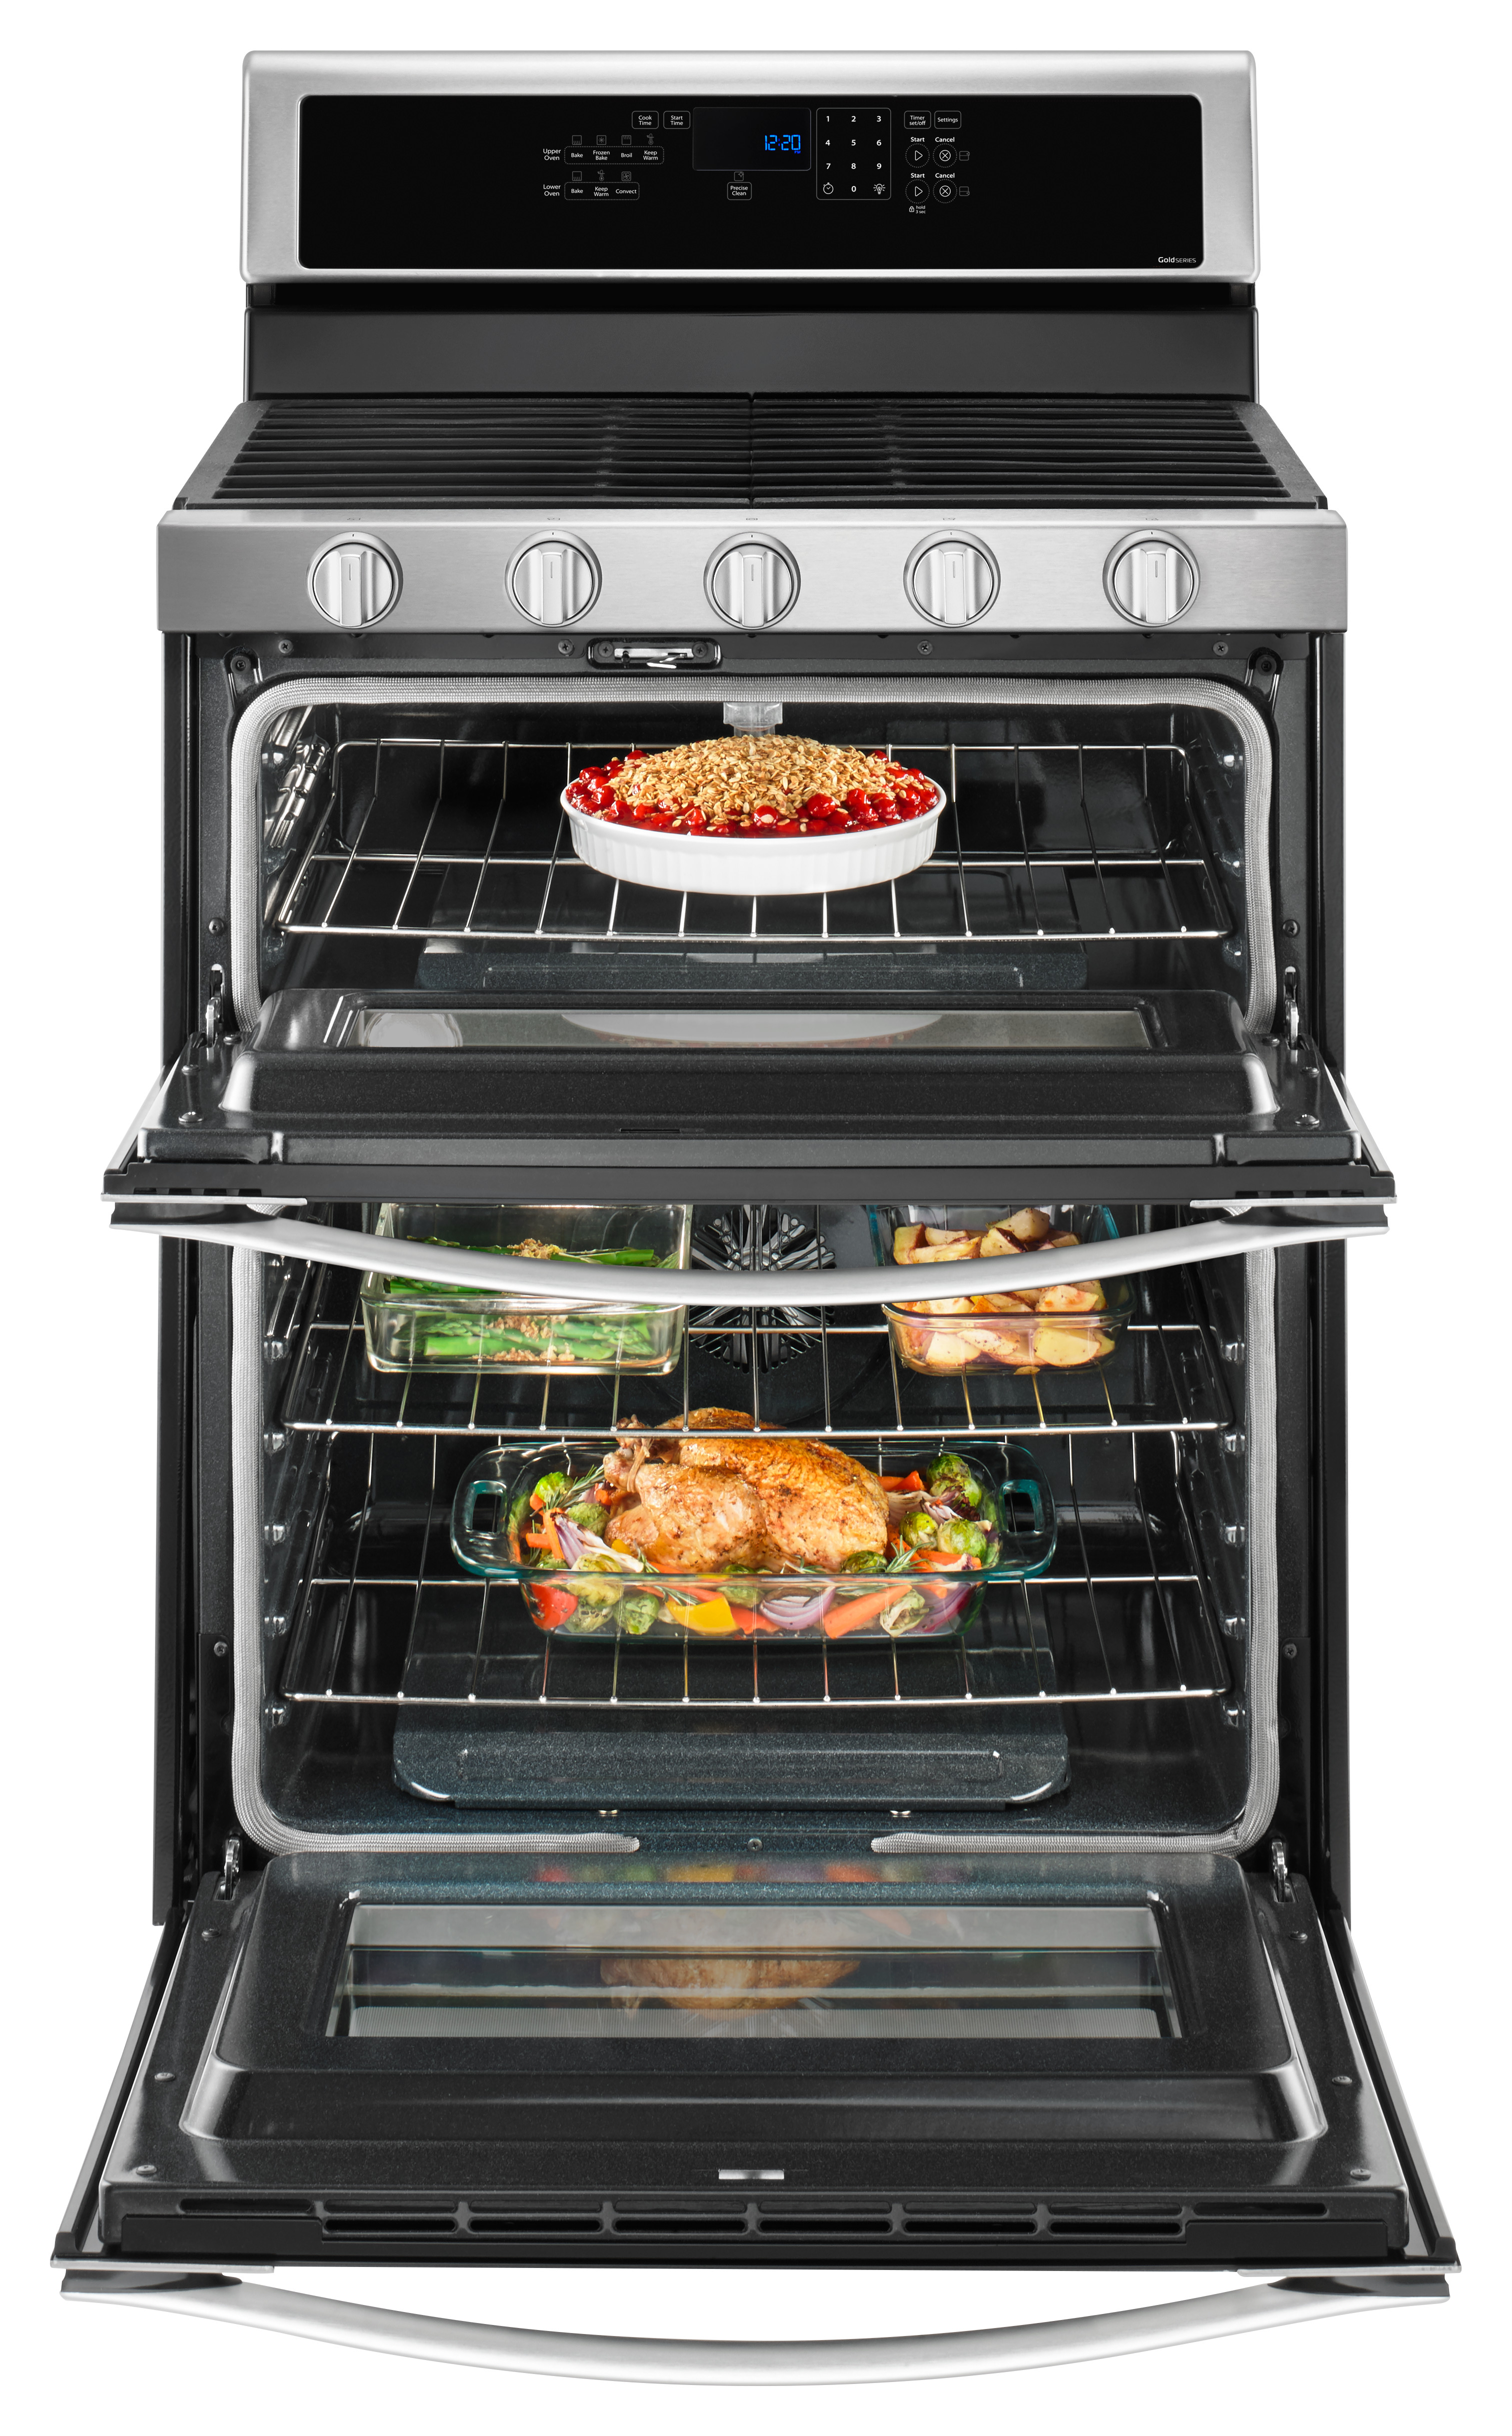 Whirlpool WGG745S0FS 6.0 cu. ft. Gas Double Oven Range with Center Oval Burner - Stainless Steel